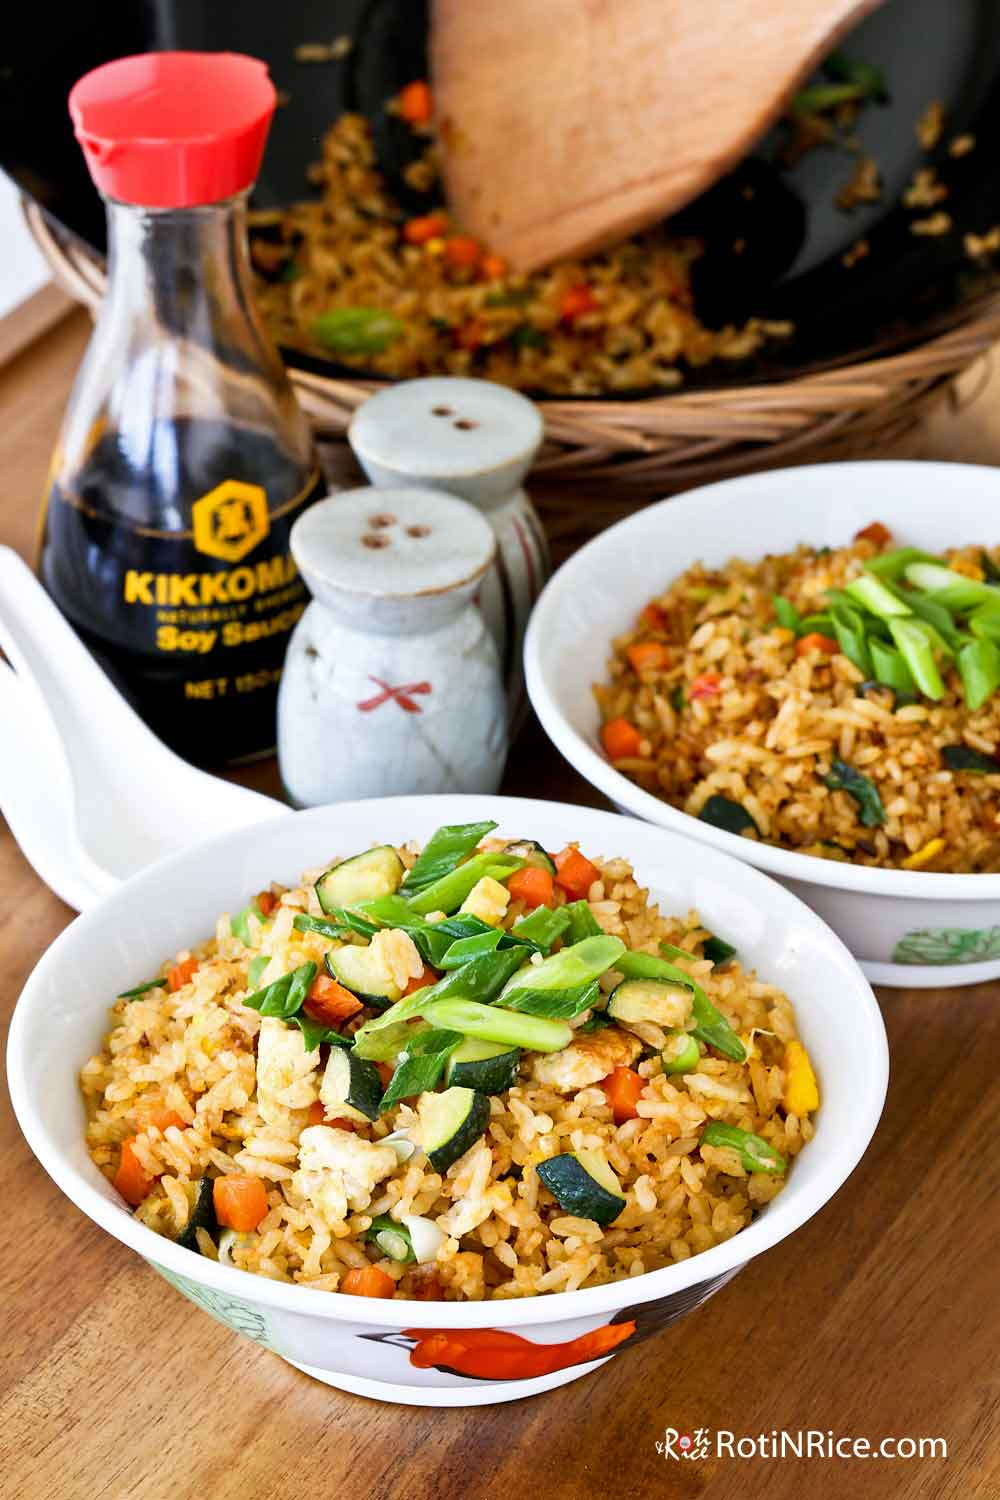 Super quick and easy Zucchini and Egg Fried Rice.